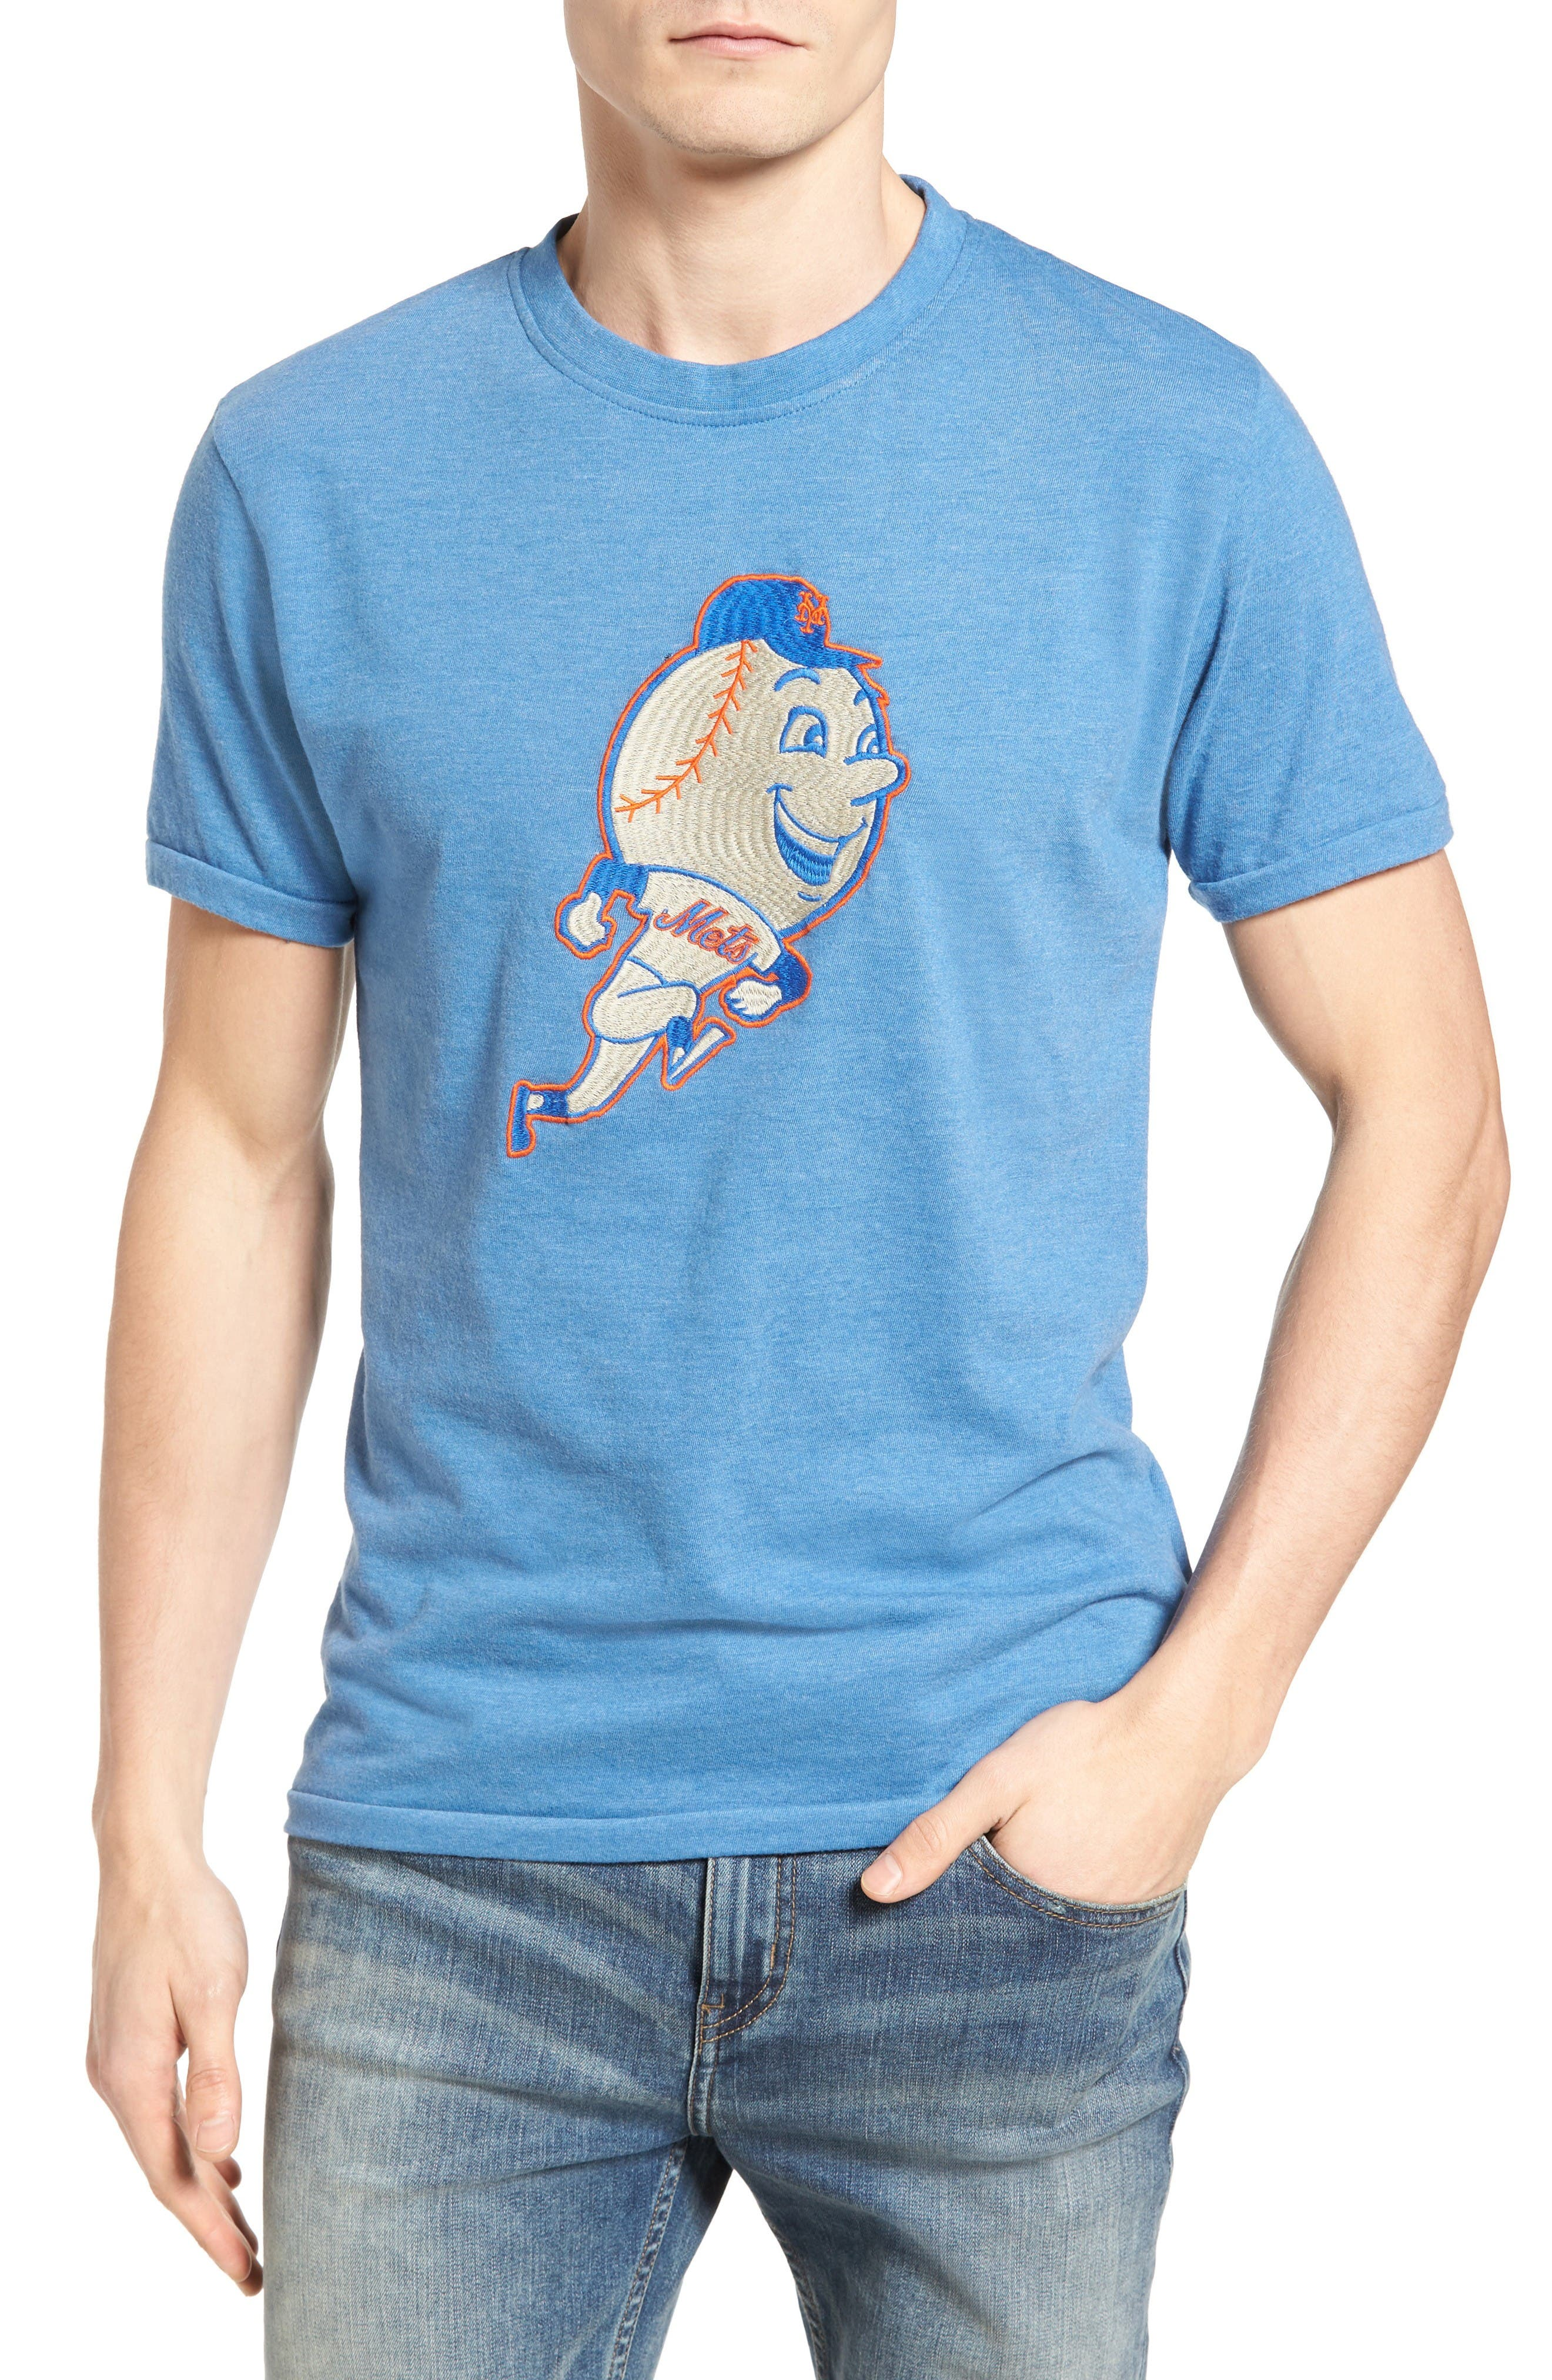 AMERICAN NEEDLE Hillwood New York Mets T-Shirt